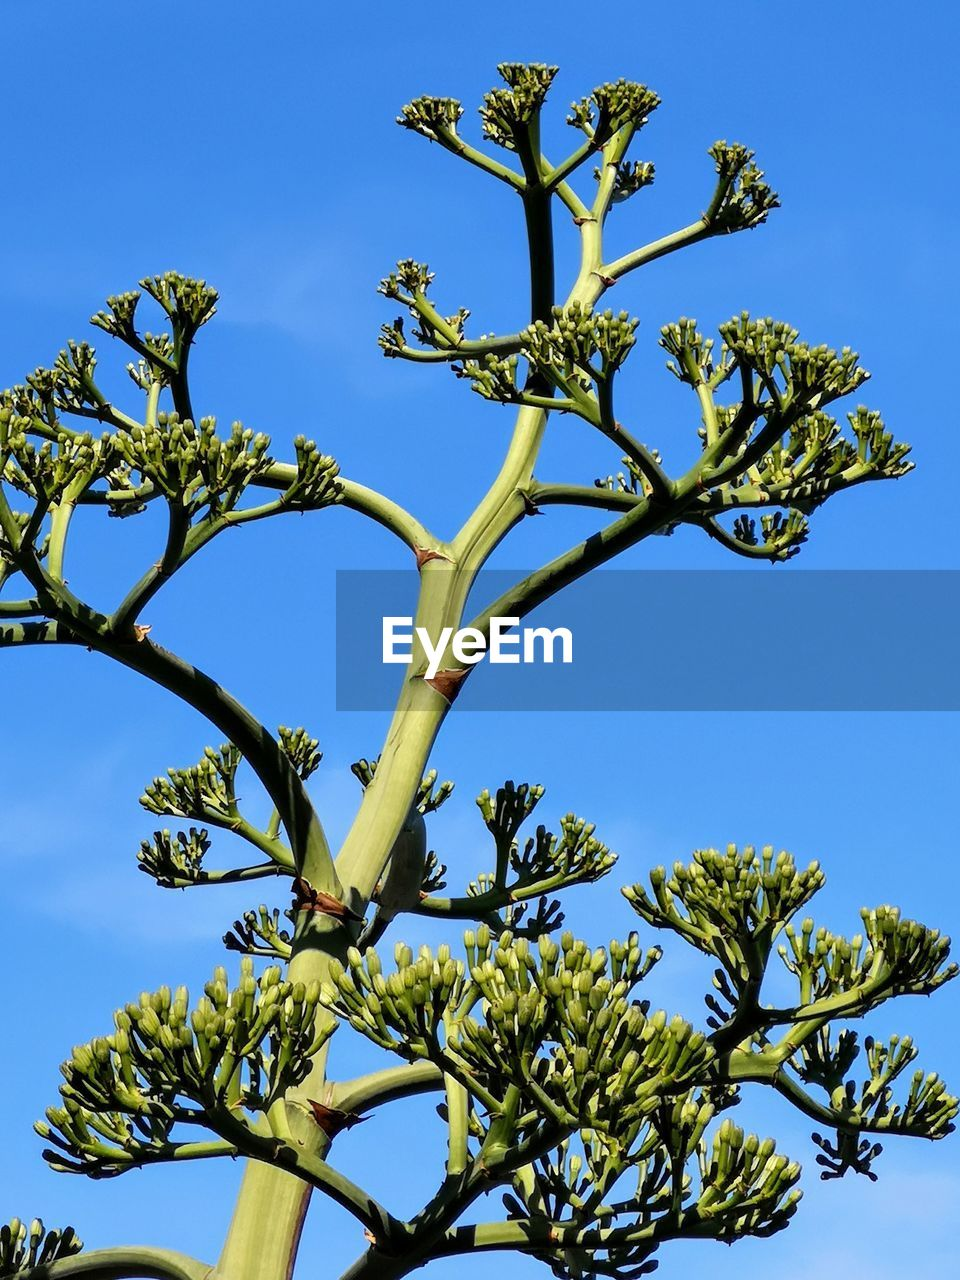 plant, tree, sky, low angle view, growth, nature, no people, blue, day, branch, beauty in nature, clear sky, outdoors, sunlight, tranquility, green color, leaf, flower, tree trunk, plant part